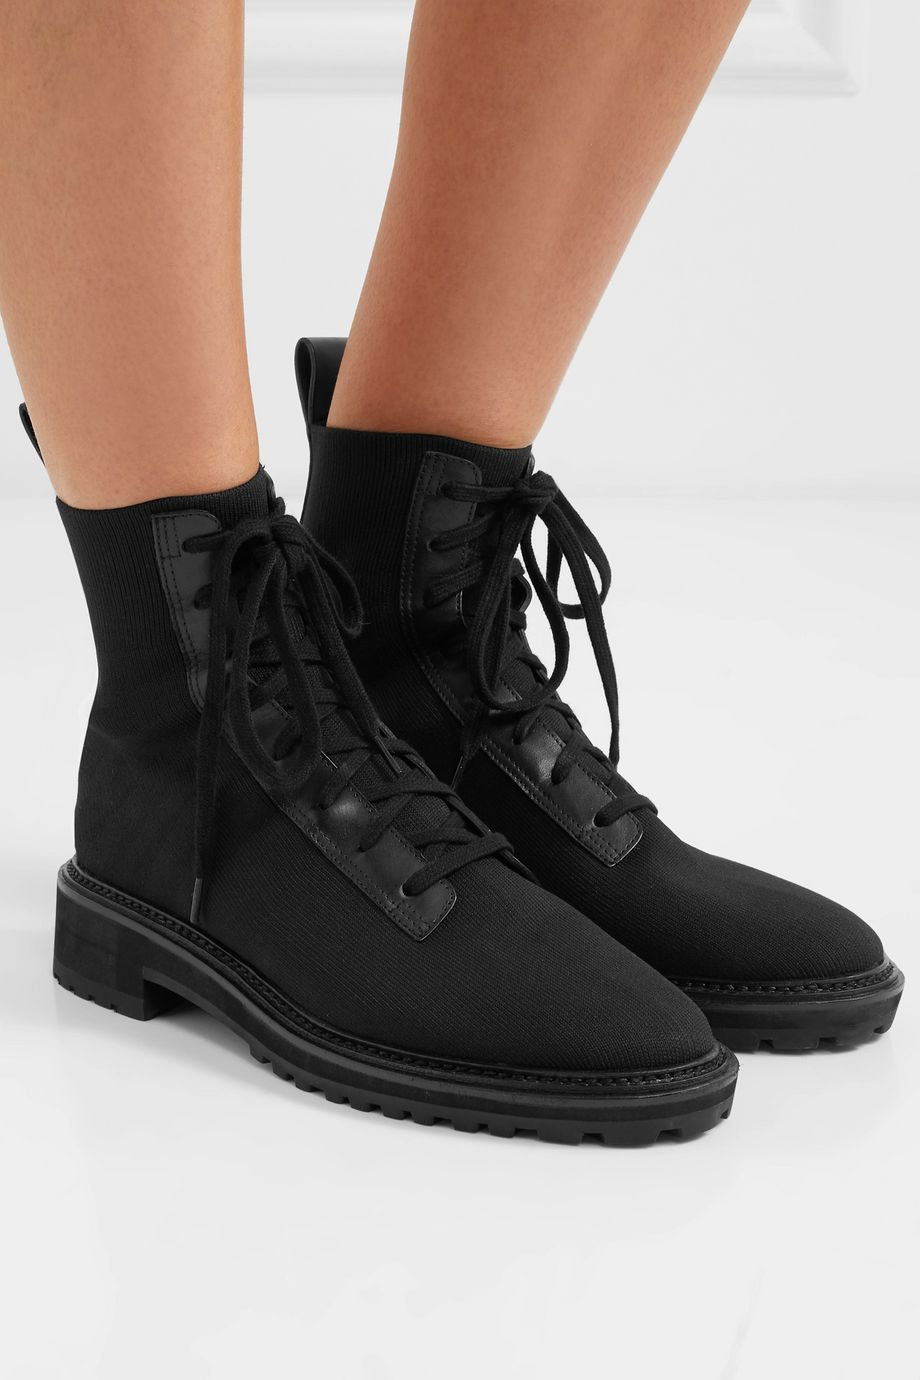 Loeffler Randall Brady leather-paneled stretch-knit ankle boots